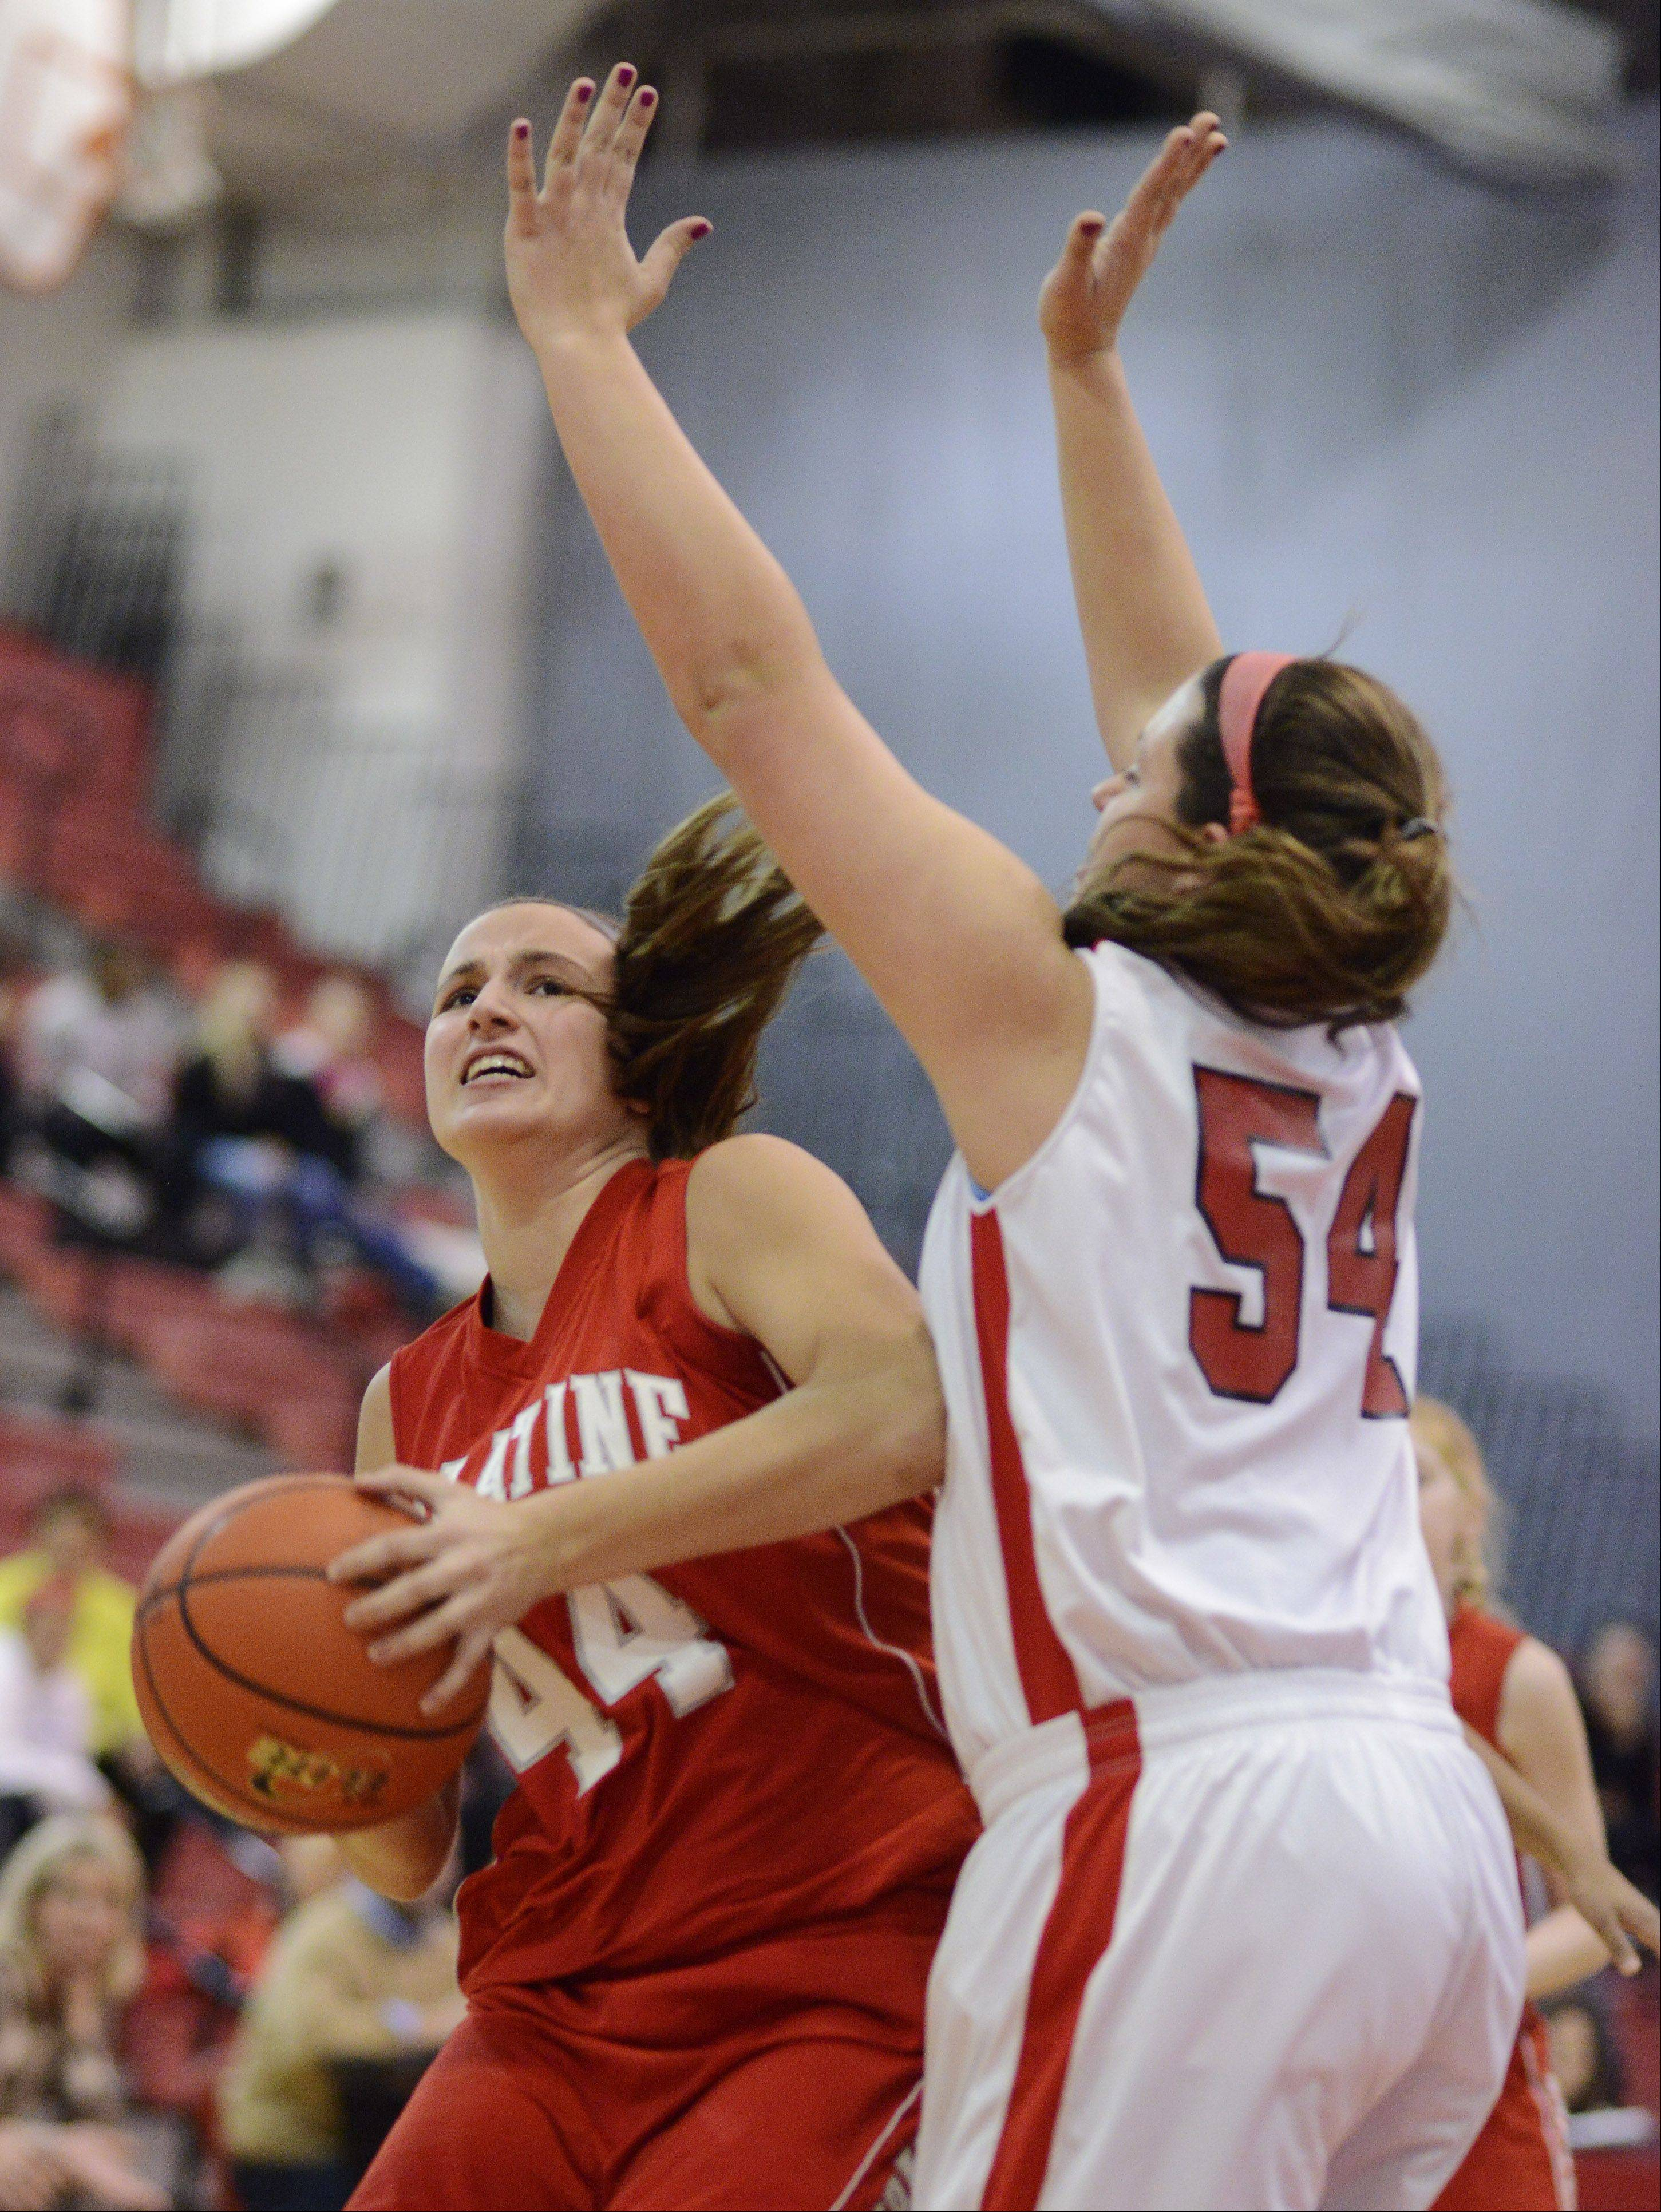 Palatine's Monica Masini makes a move near the basket against the defense of Barrington's Alexa Resch during Tuesday's game.